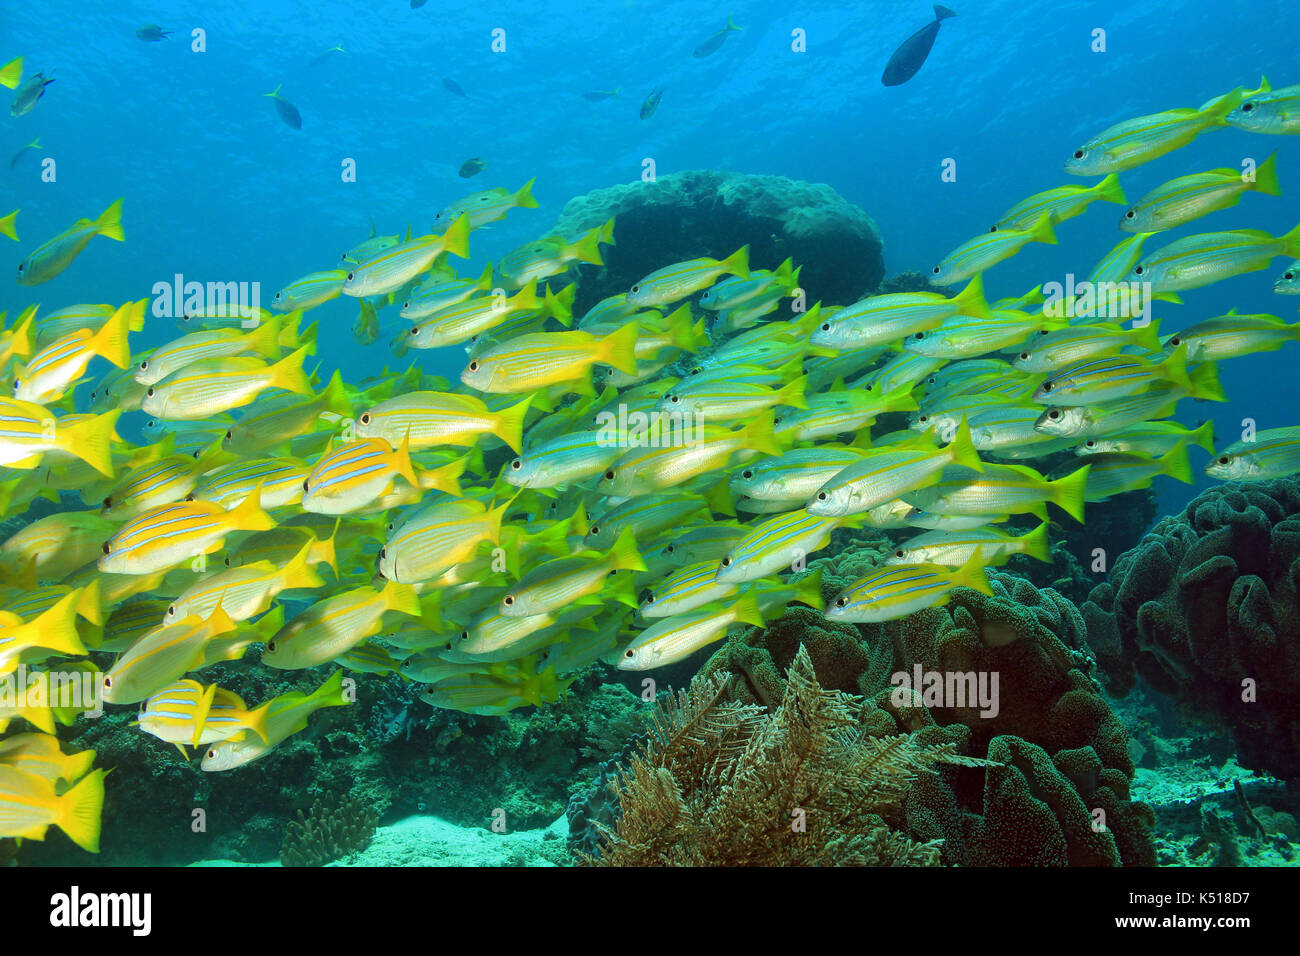 School of Snappers. Mansuar, Raja Ampat, Indonesia - Stock Image